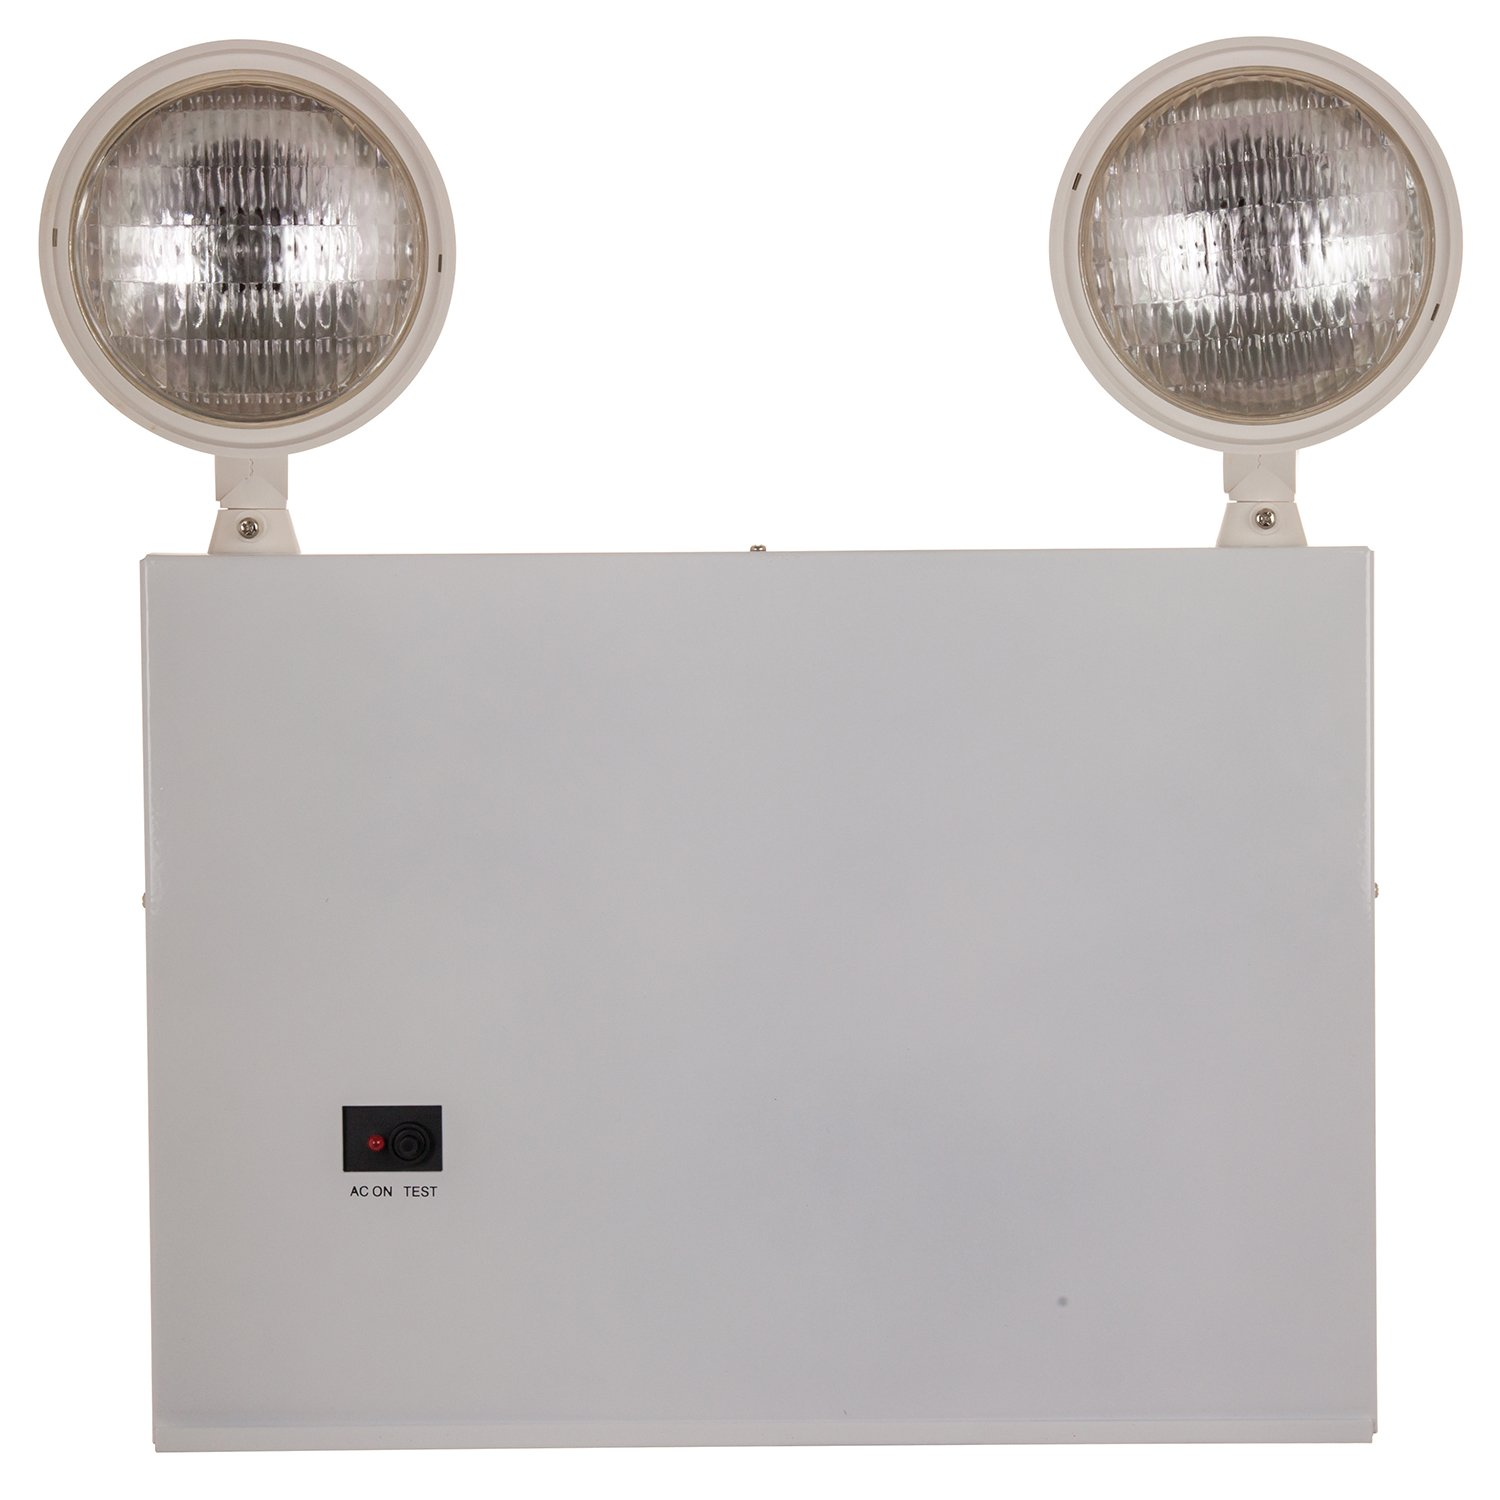 Sunlite EMER/6V/3H/27W/9W/NYC Commercial and Residential Emergency Exit Light by Sunlite